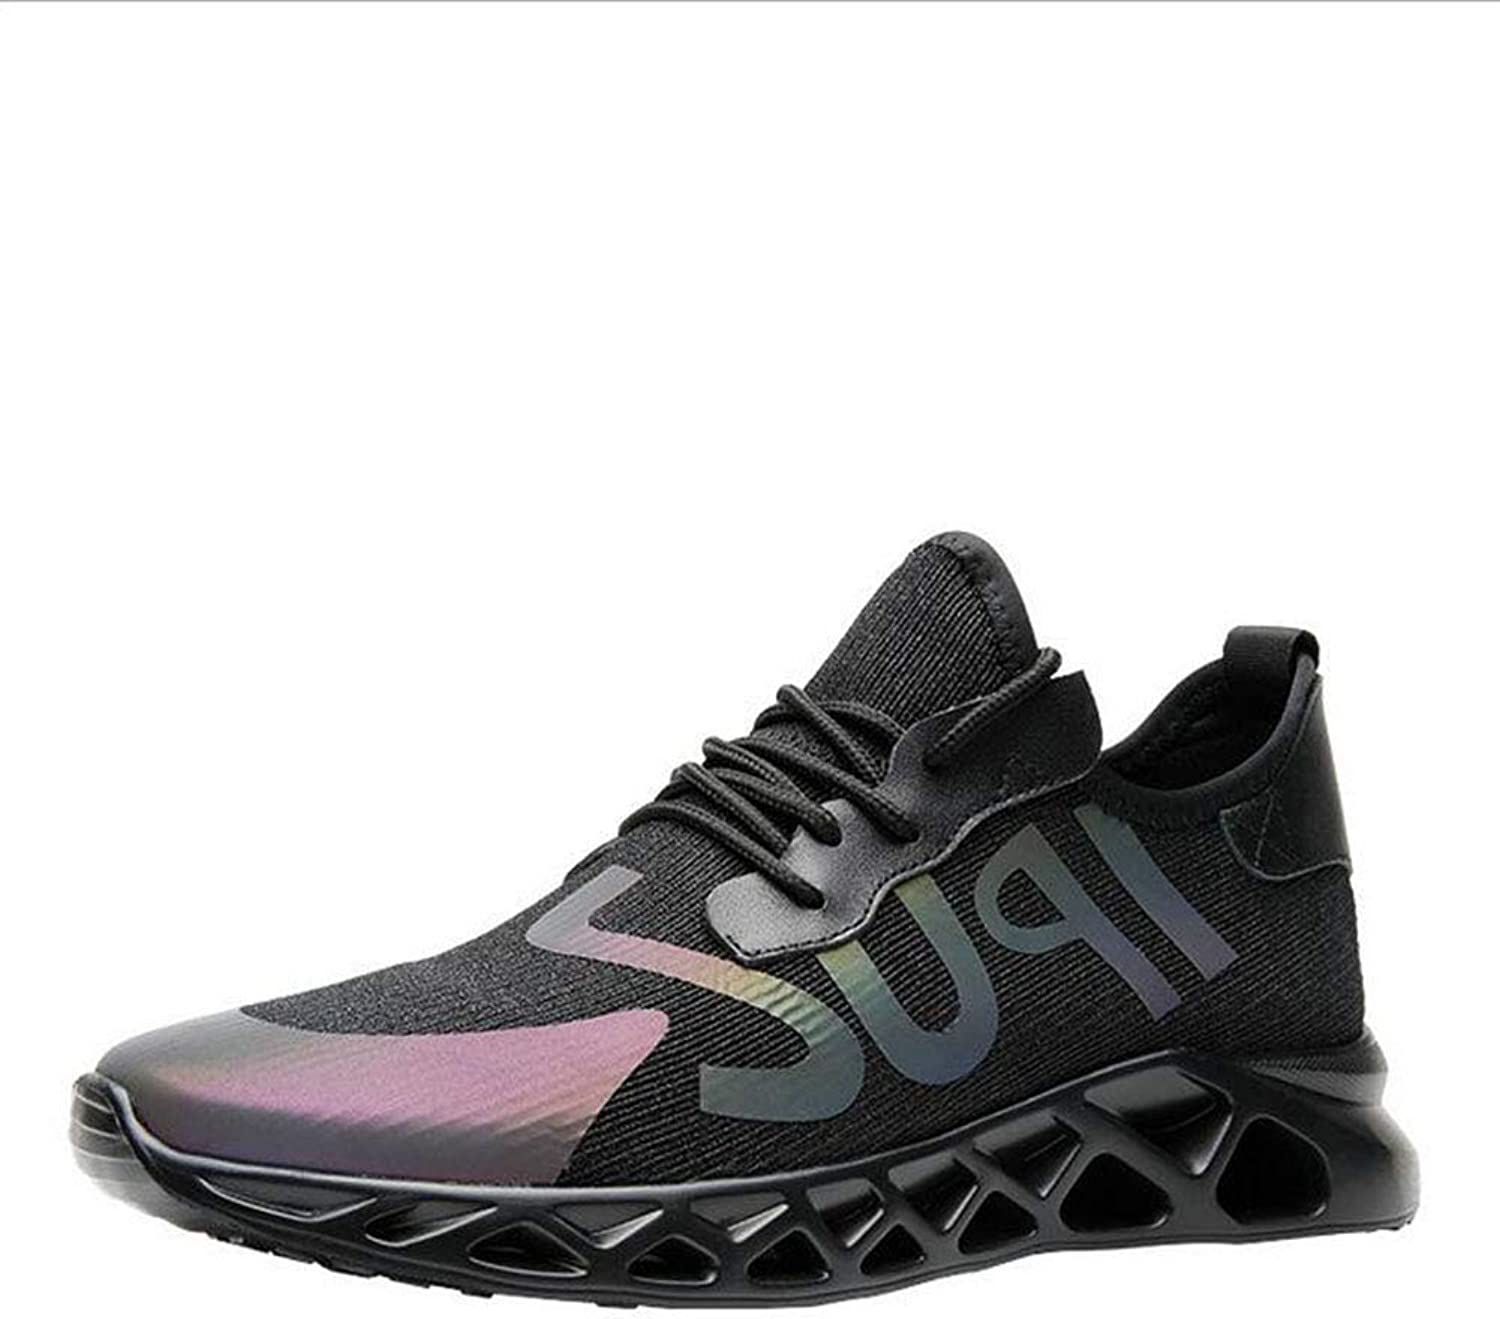 Men Sports Casual Running shoes Walking Jogging Gym Sneakers Comfortable Breathable Fashion Trainers Athletic Mesh